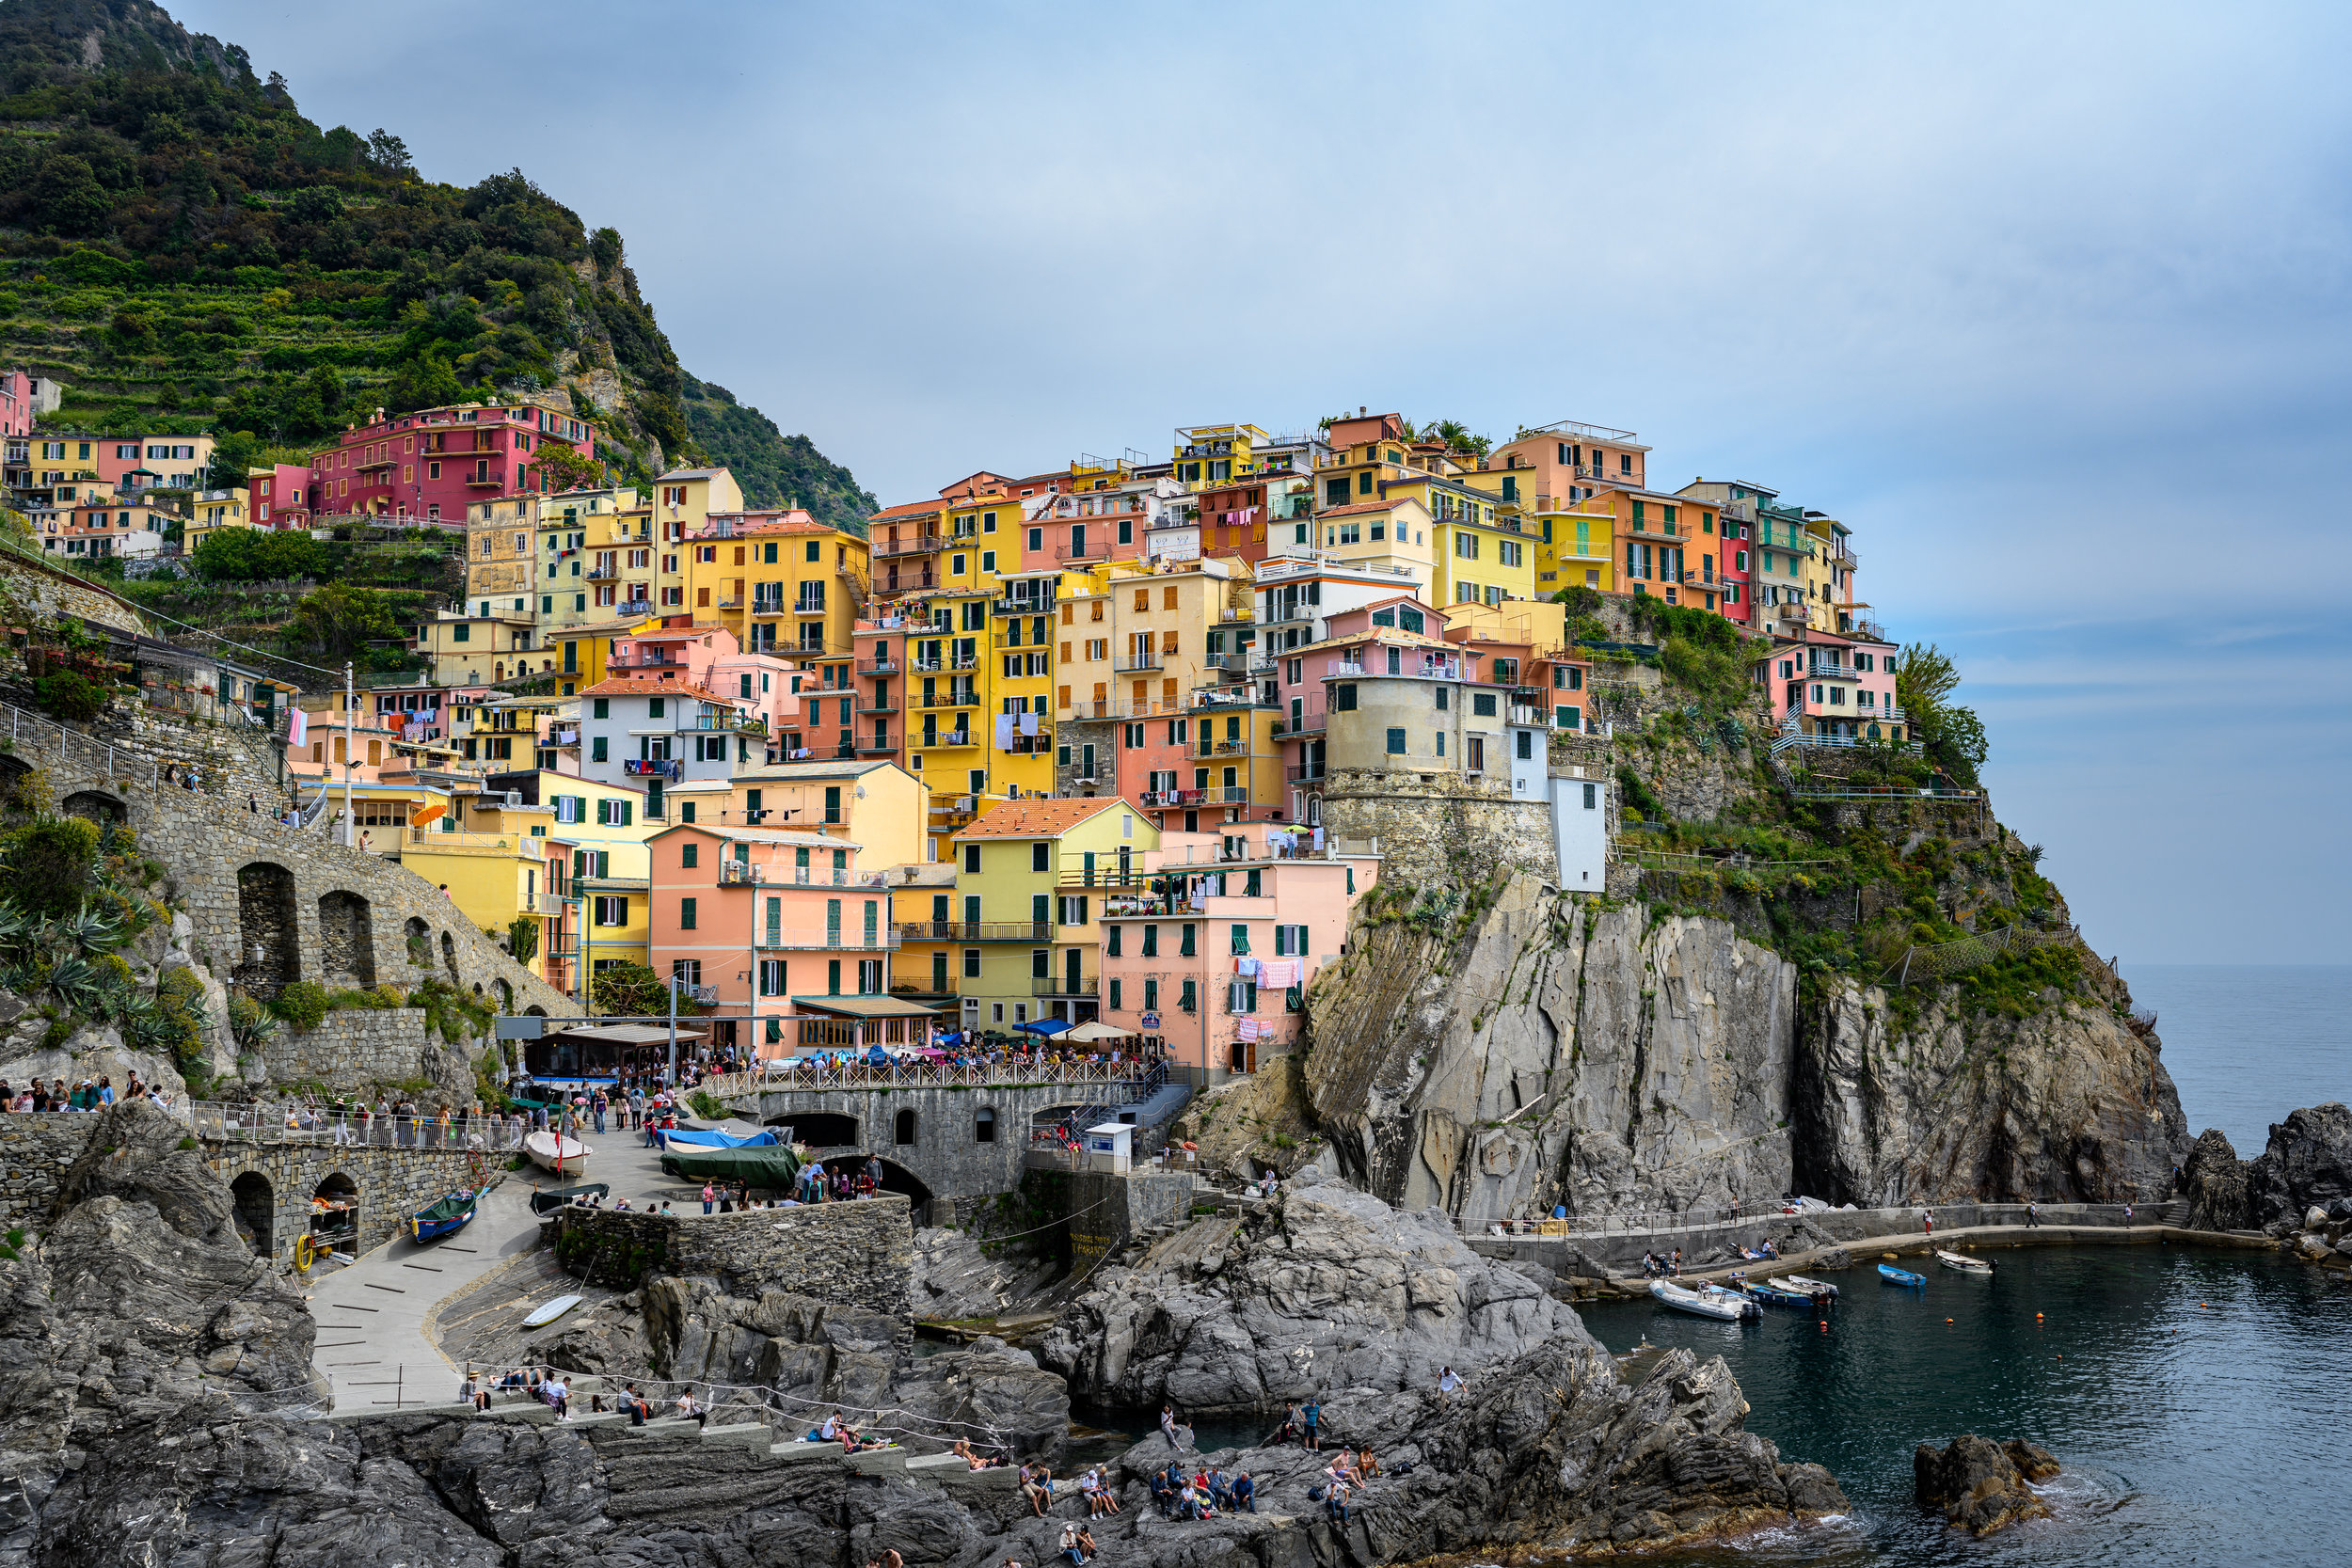 Magnificent Manarola!